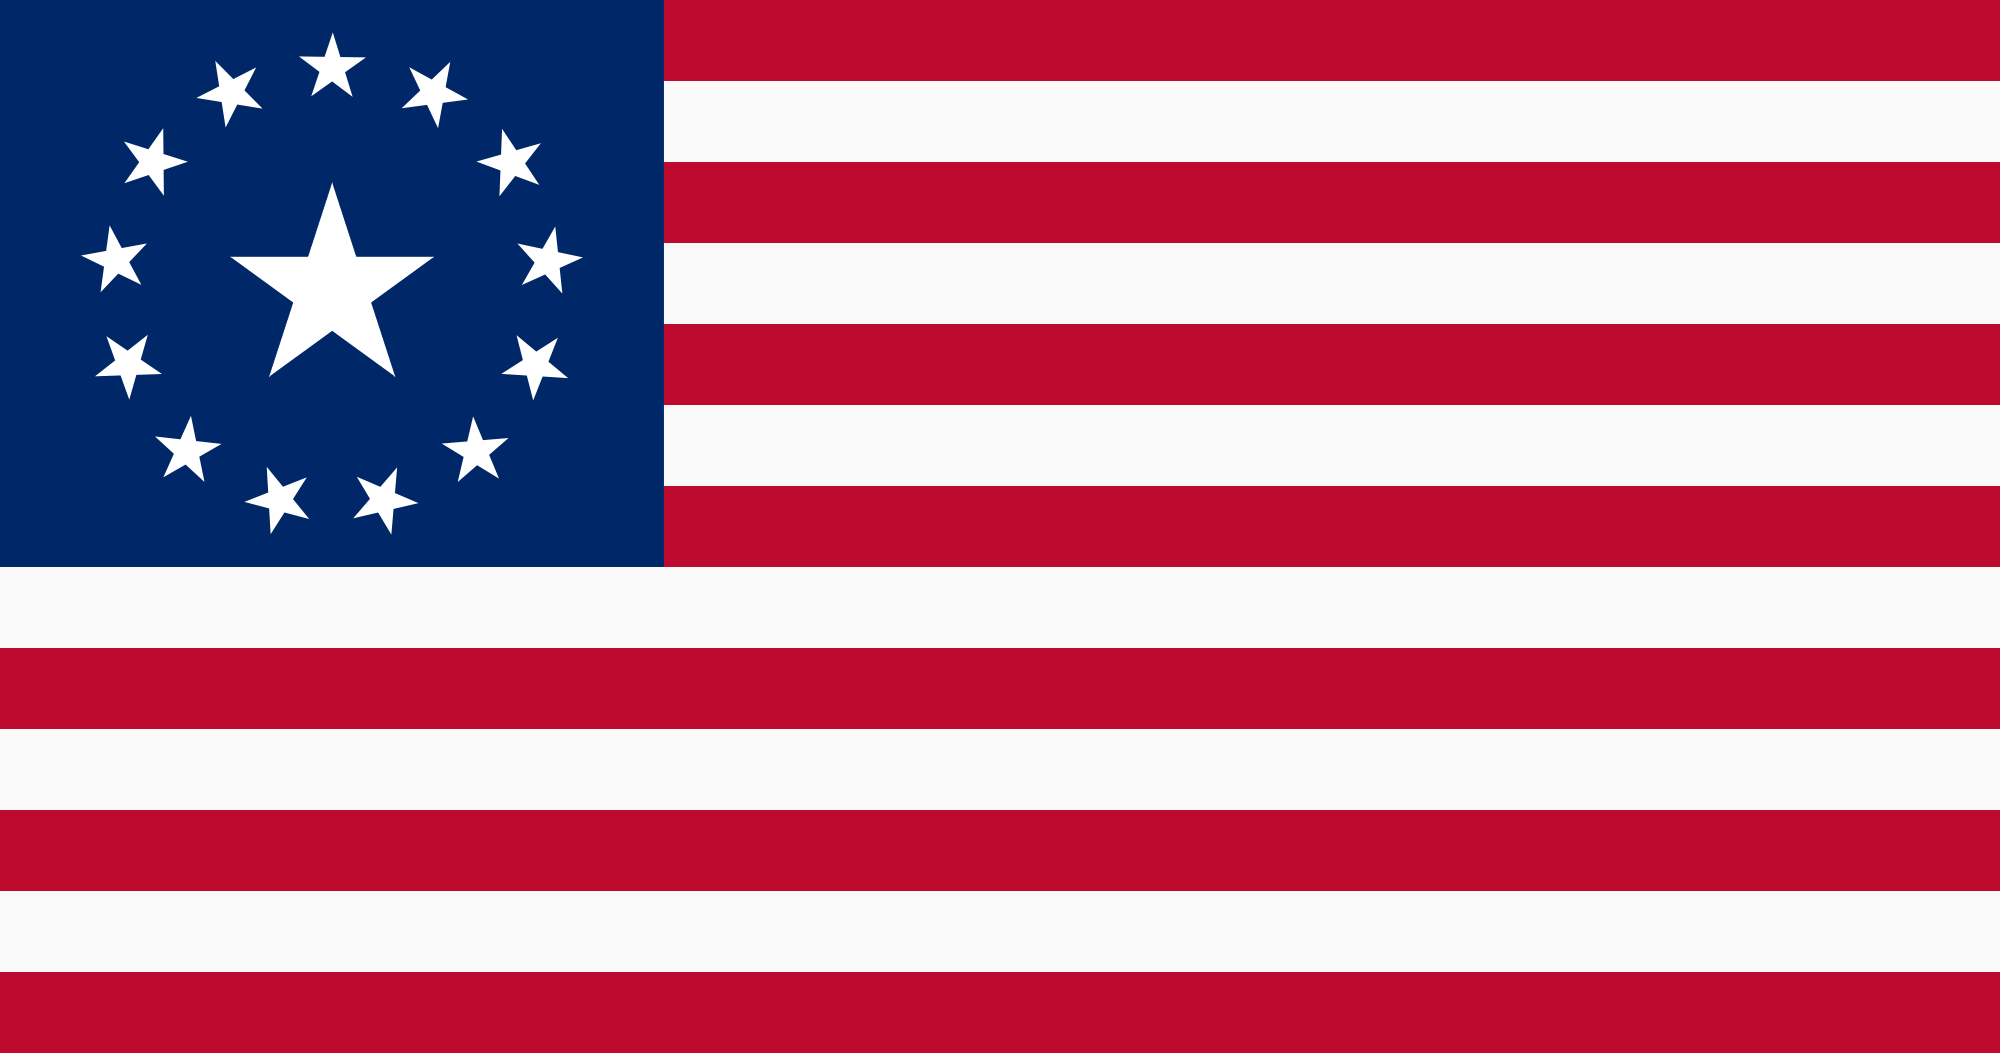 United States of America | Fallout Fanfiction Wiki | FANDOM powered